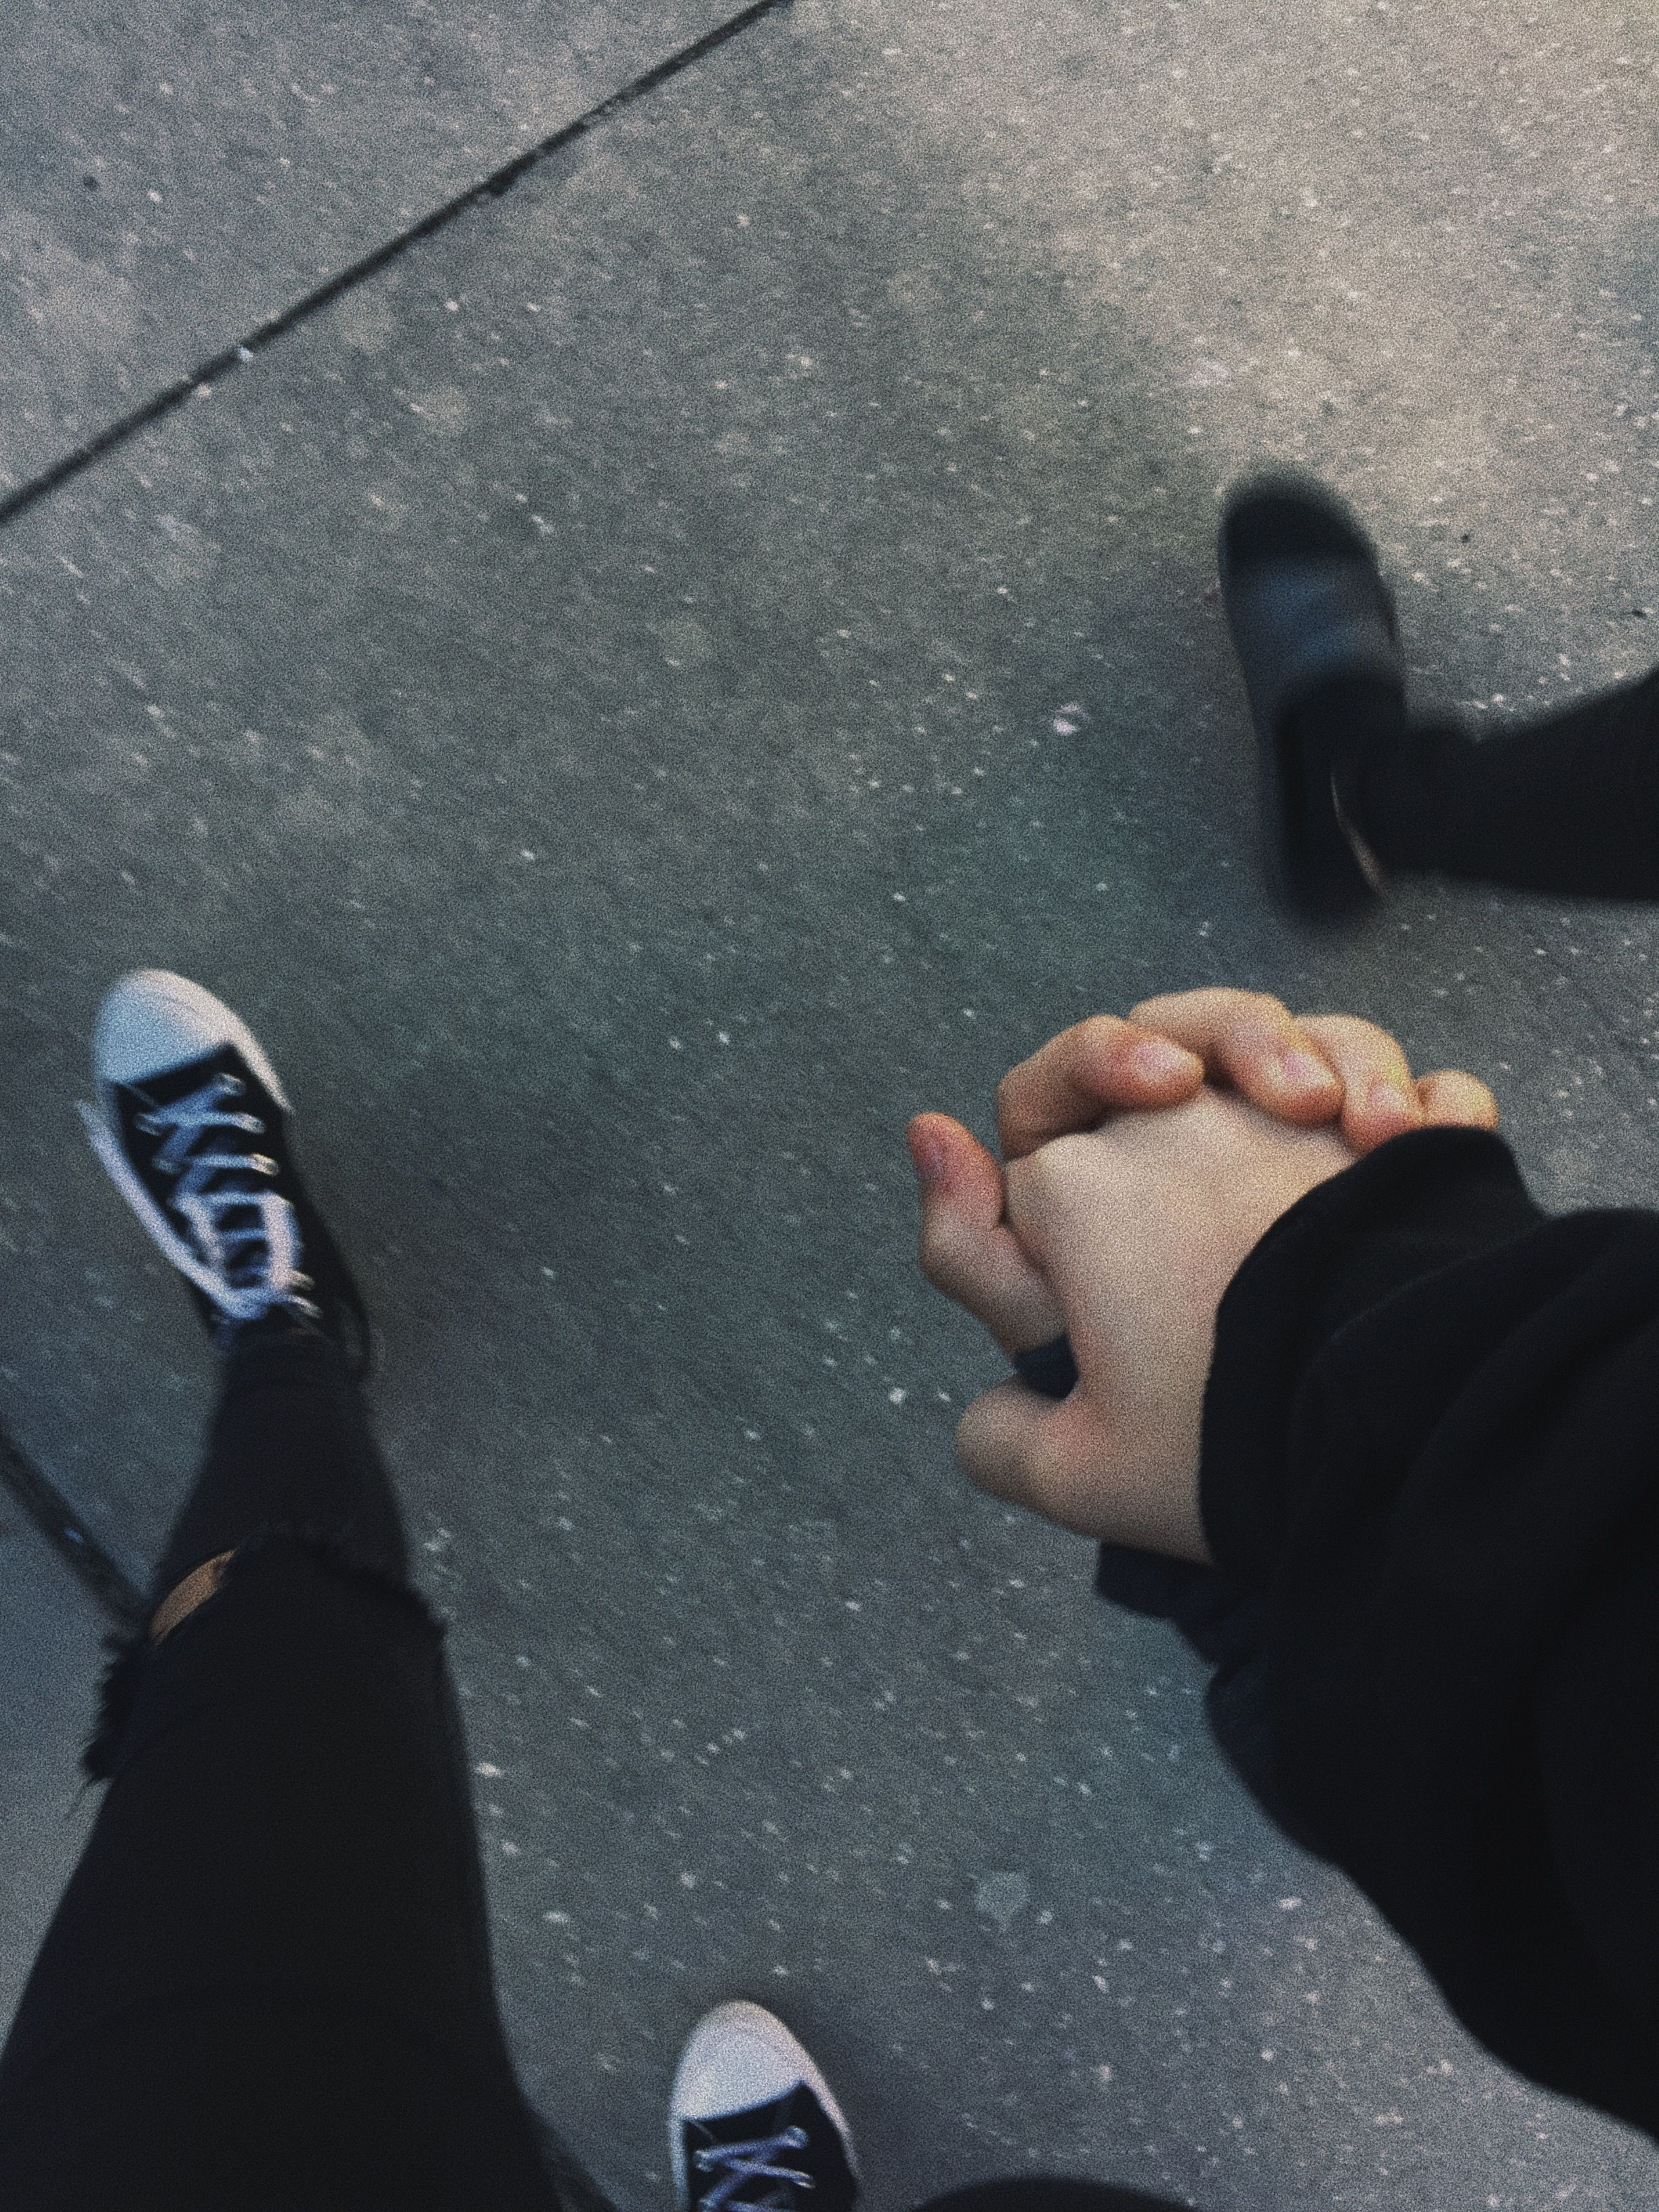 Grunge tumblr love photography aesthetic holdinghands couple relationships relationshipgoals